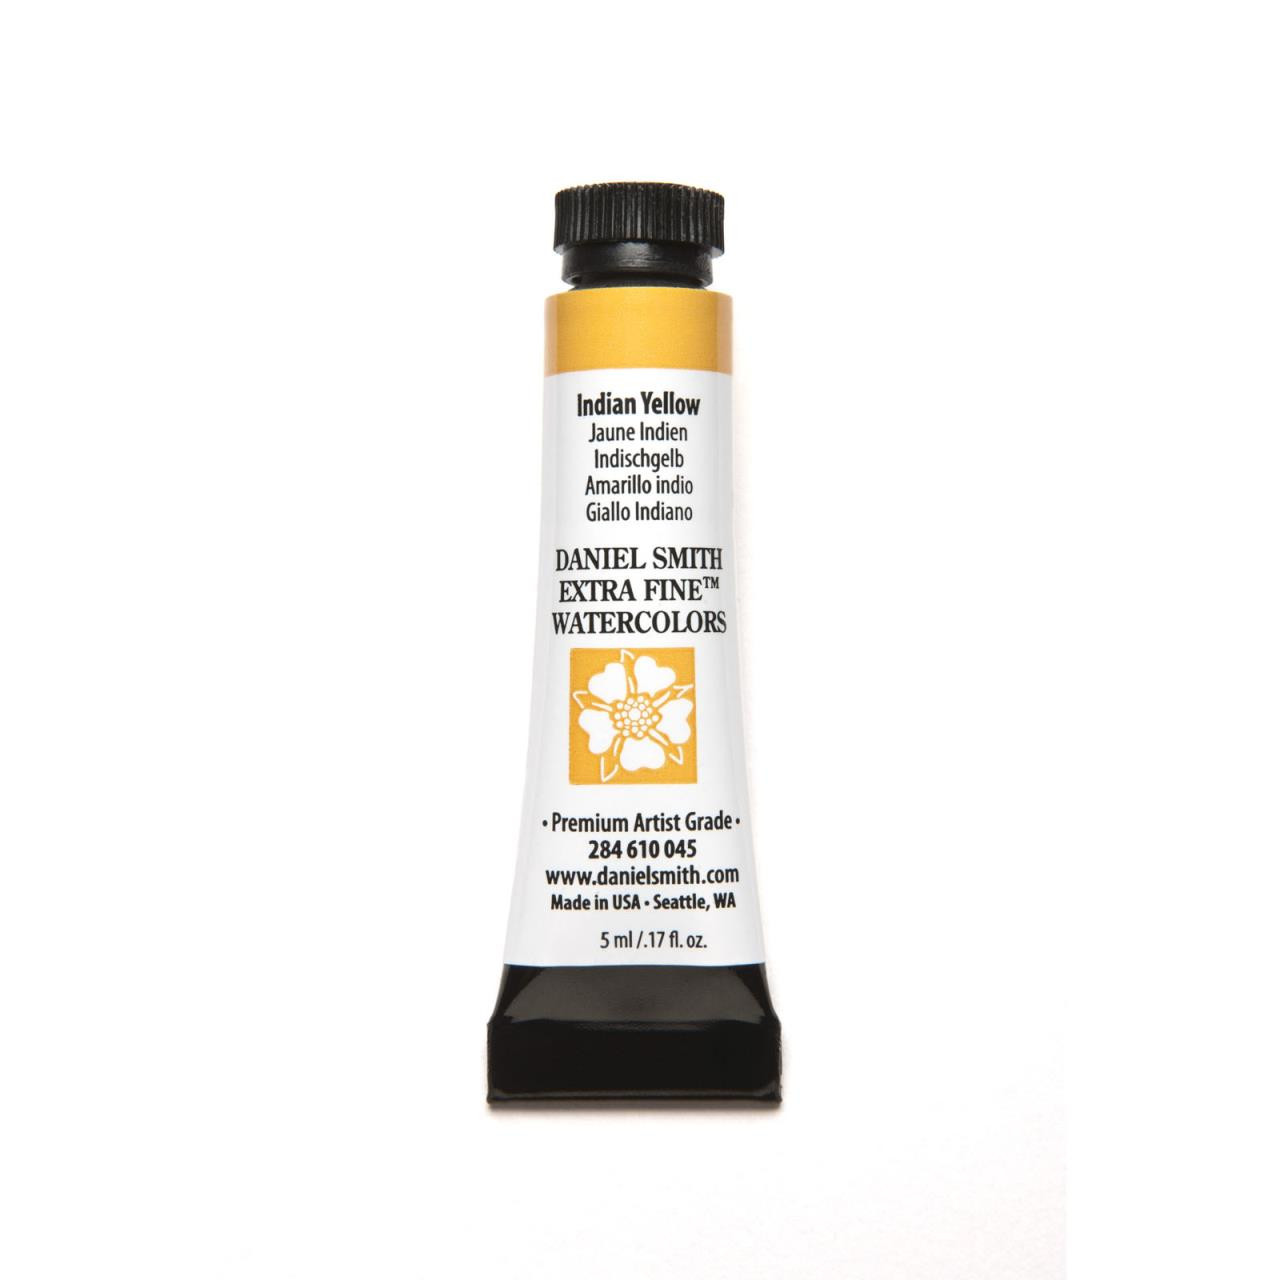 Indian Yellow, DANIEL SMITH Extra Fine Watercolors 5ml Tubes -